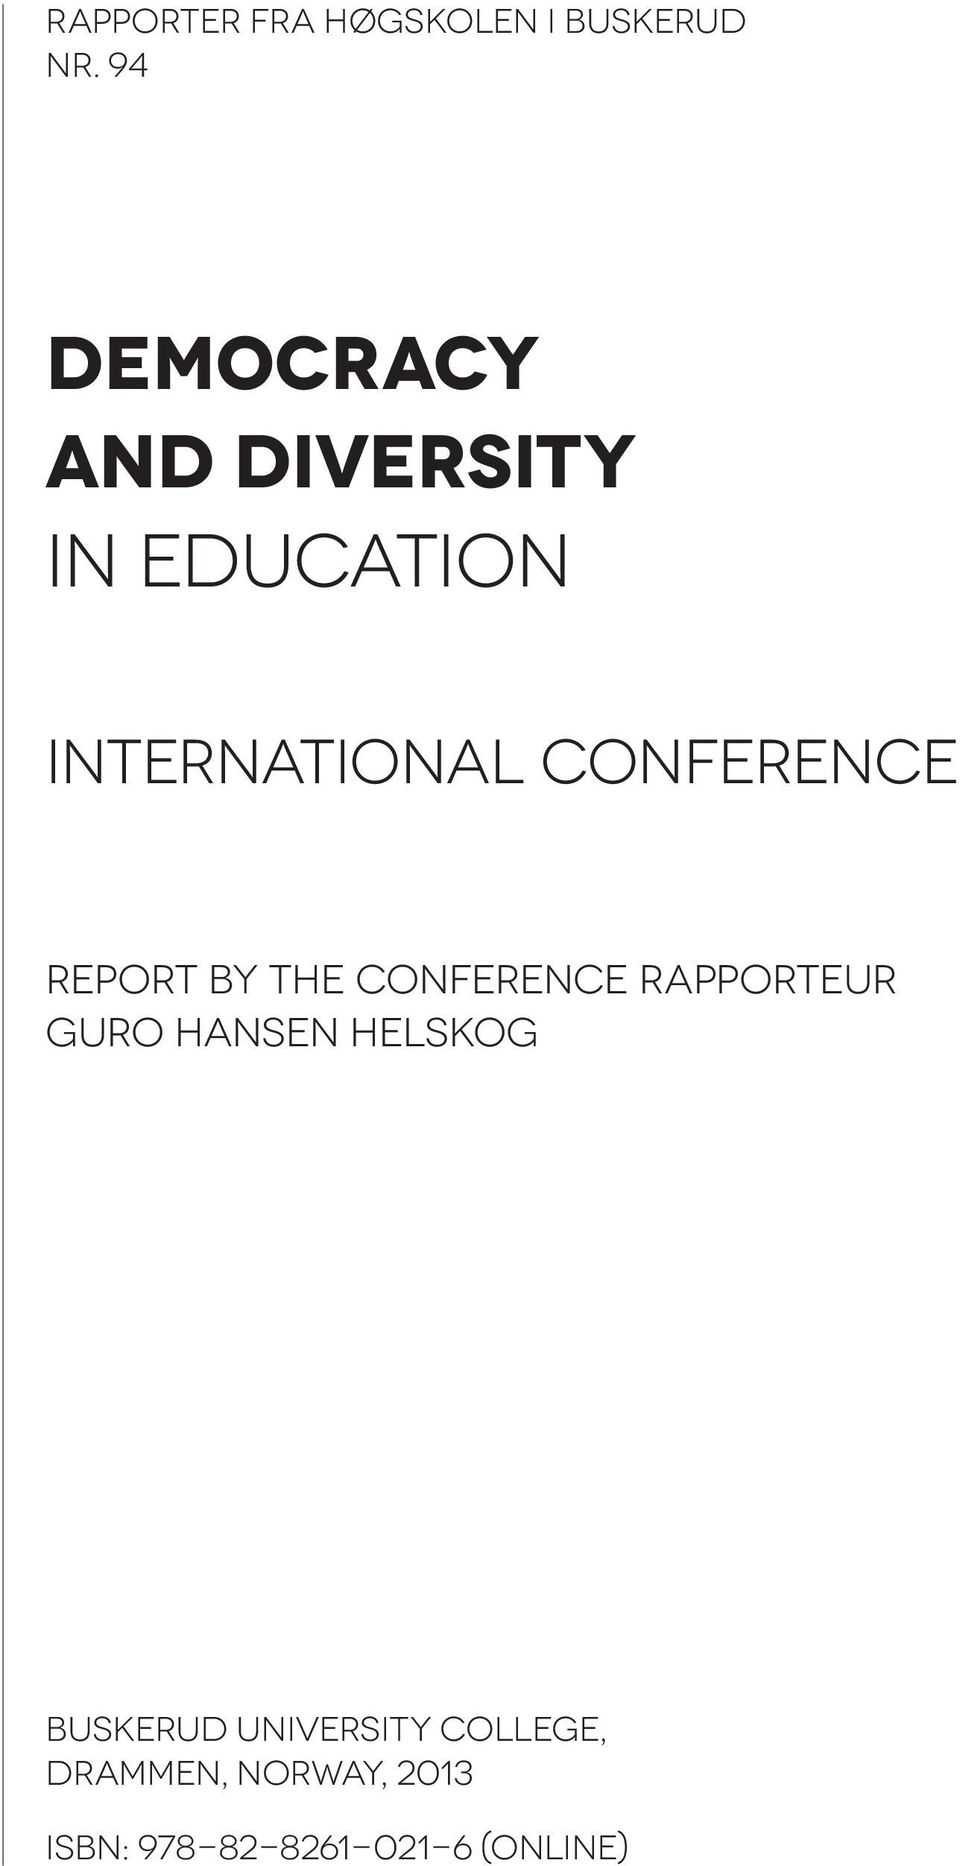 Conference Report by the Conference Rapporteur Guro Hansen